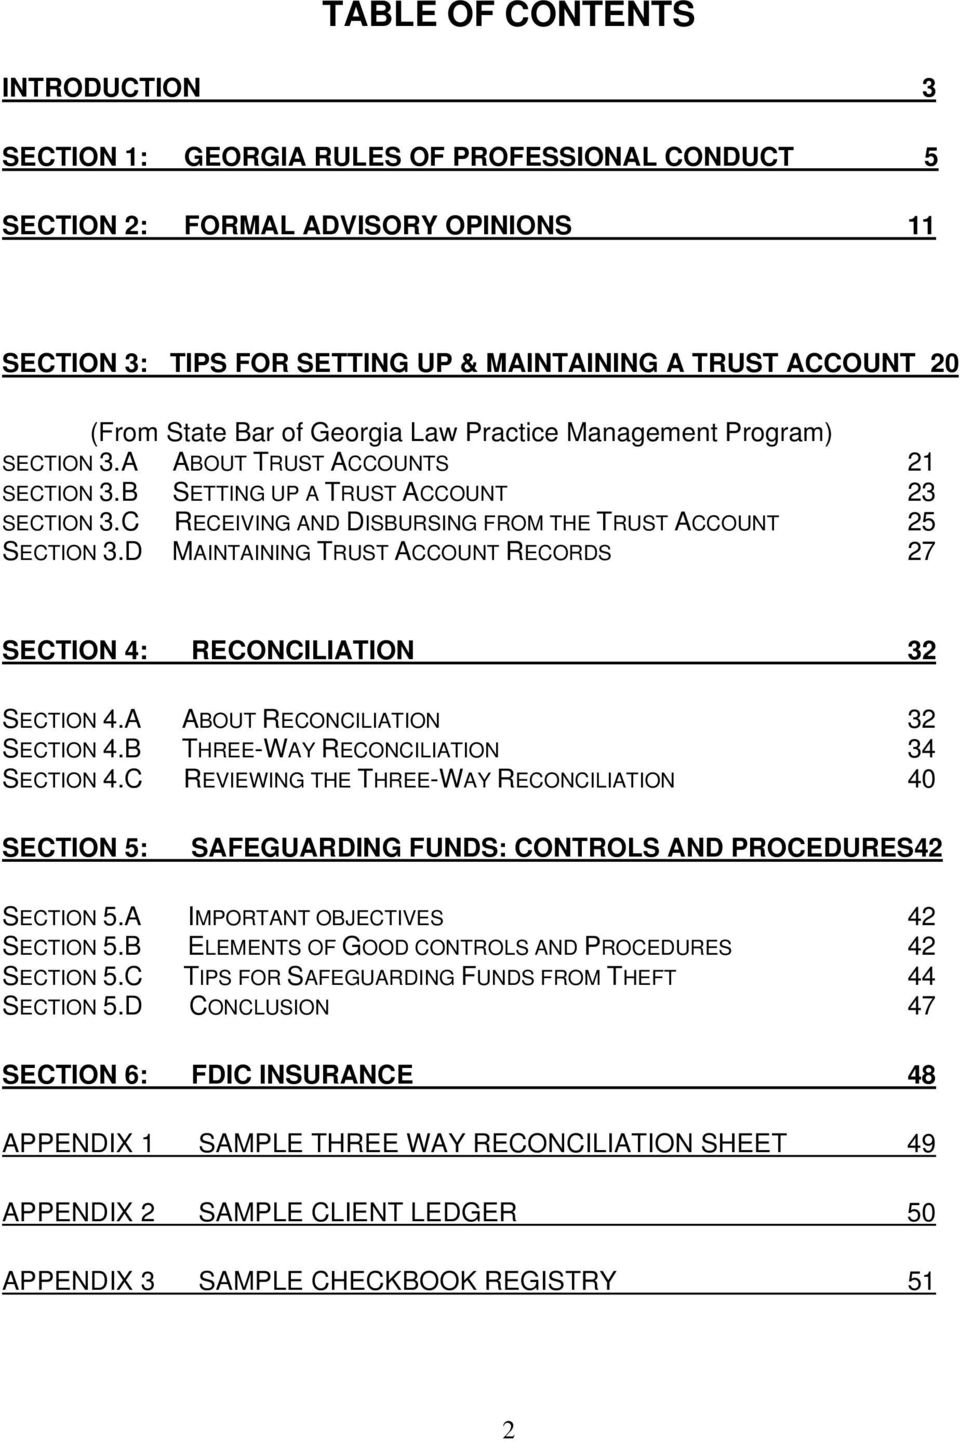 D MAINTAINING TRUST ACCOUNT RECORDS 27 SECTION 4: RECONCILIATION 32 SECTION 4.A ABOUT RECONCILIATION 32 SECTION 4.B THREE-WAY RECONCILIATION 34 SECTION 4.